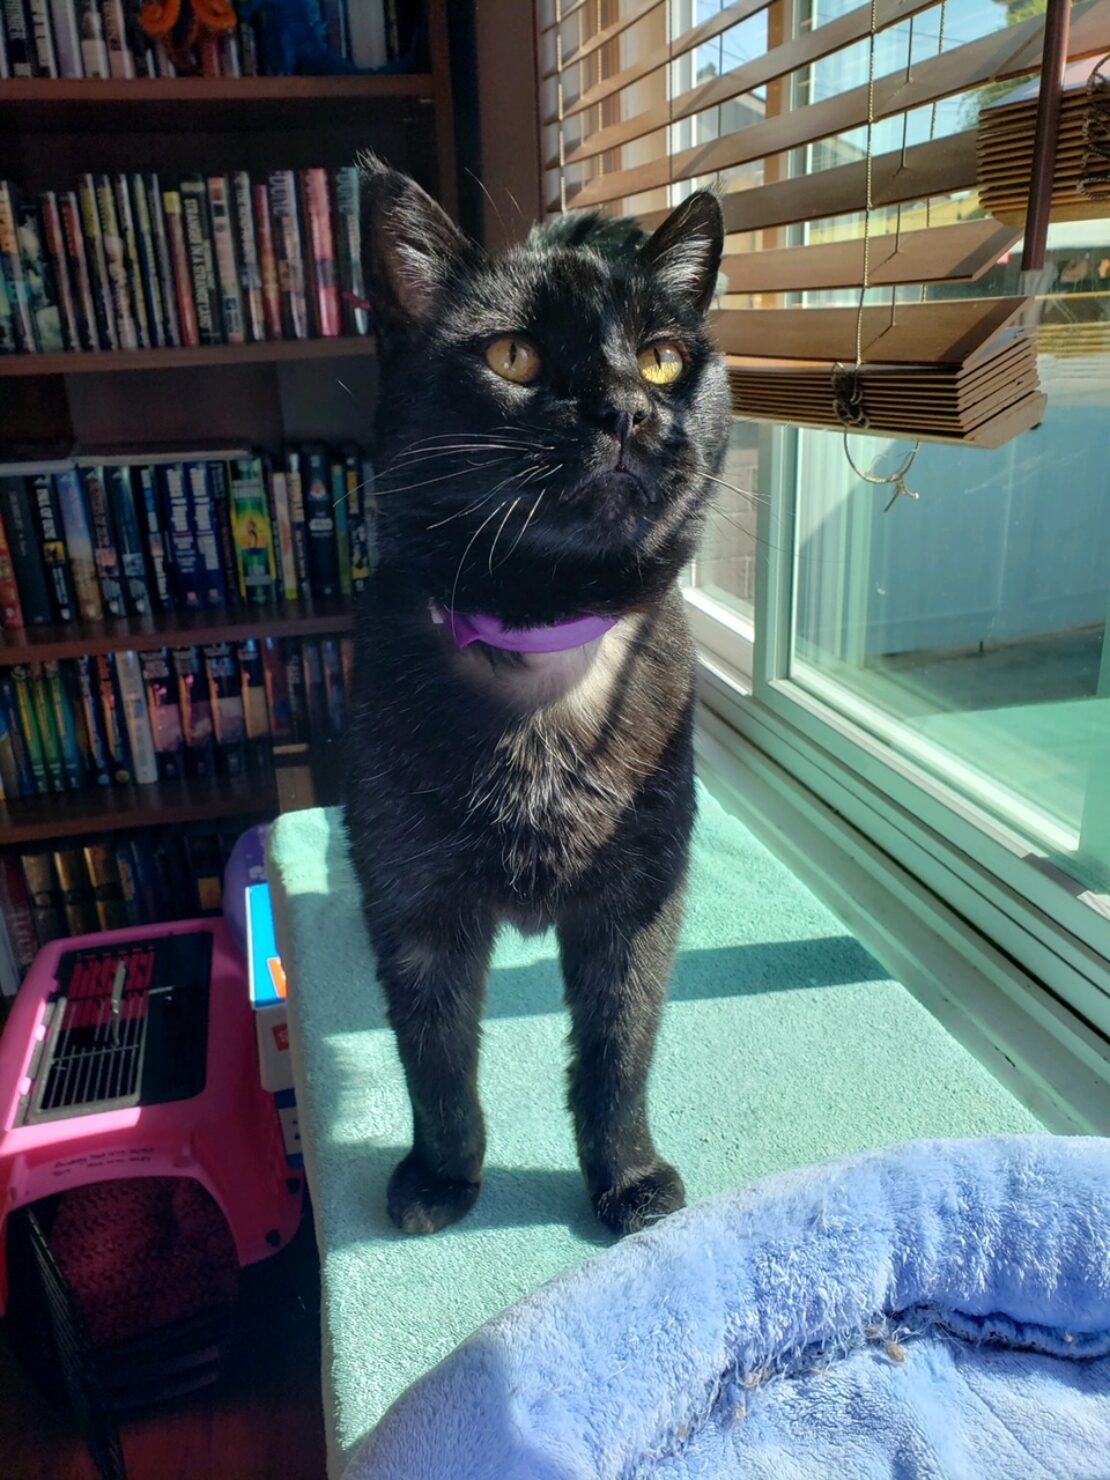 faded black kitty stands on a blue shelf near a blue cat bed by a window, with blinds. Books shelved in background.